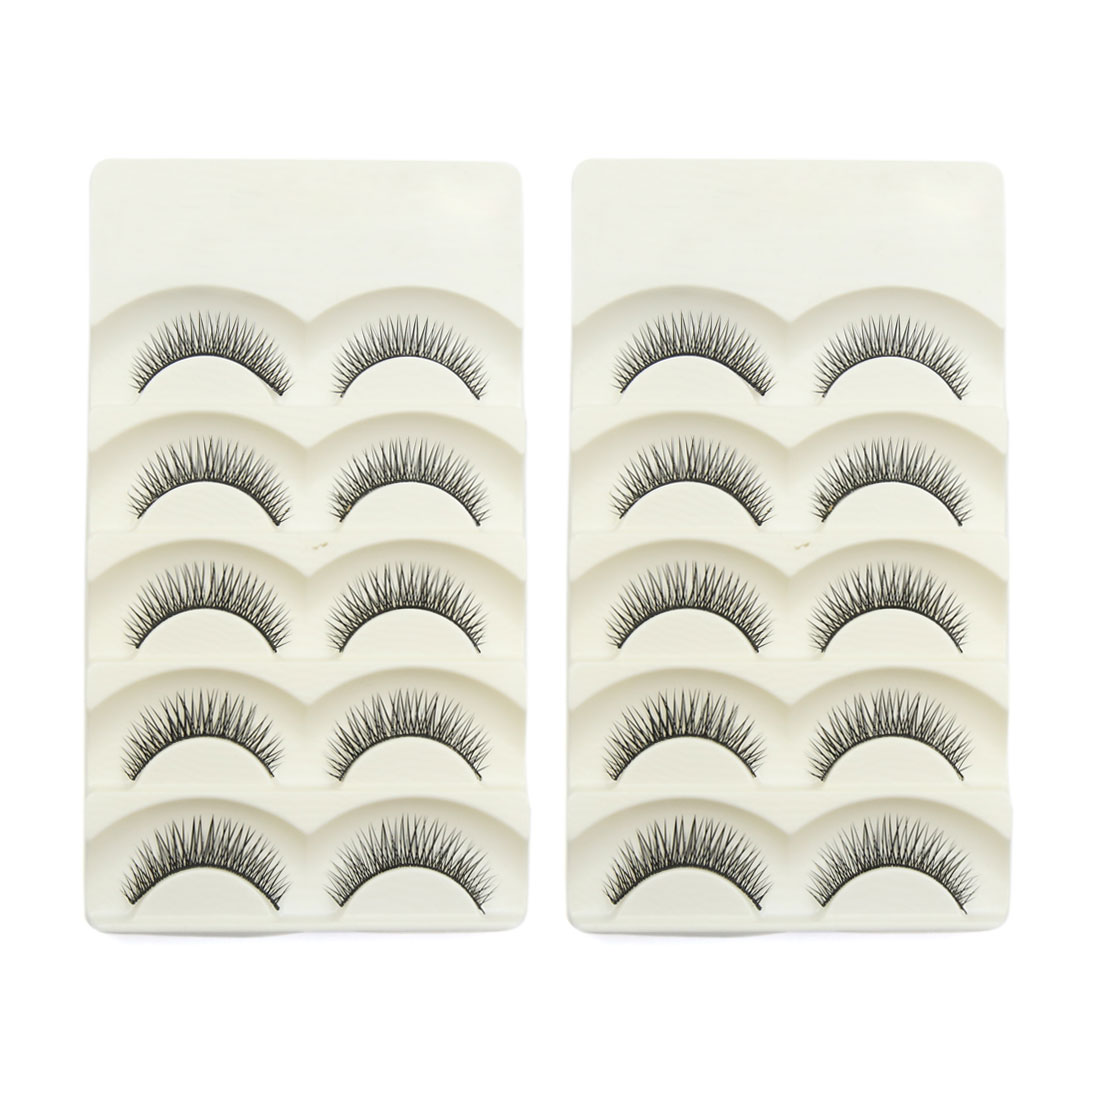 10 Pairs Natural Looking False Eyelashes Extension Eyes Makeup Cosmetic Tool #7